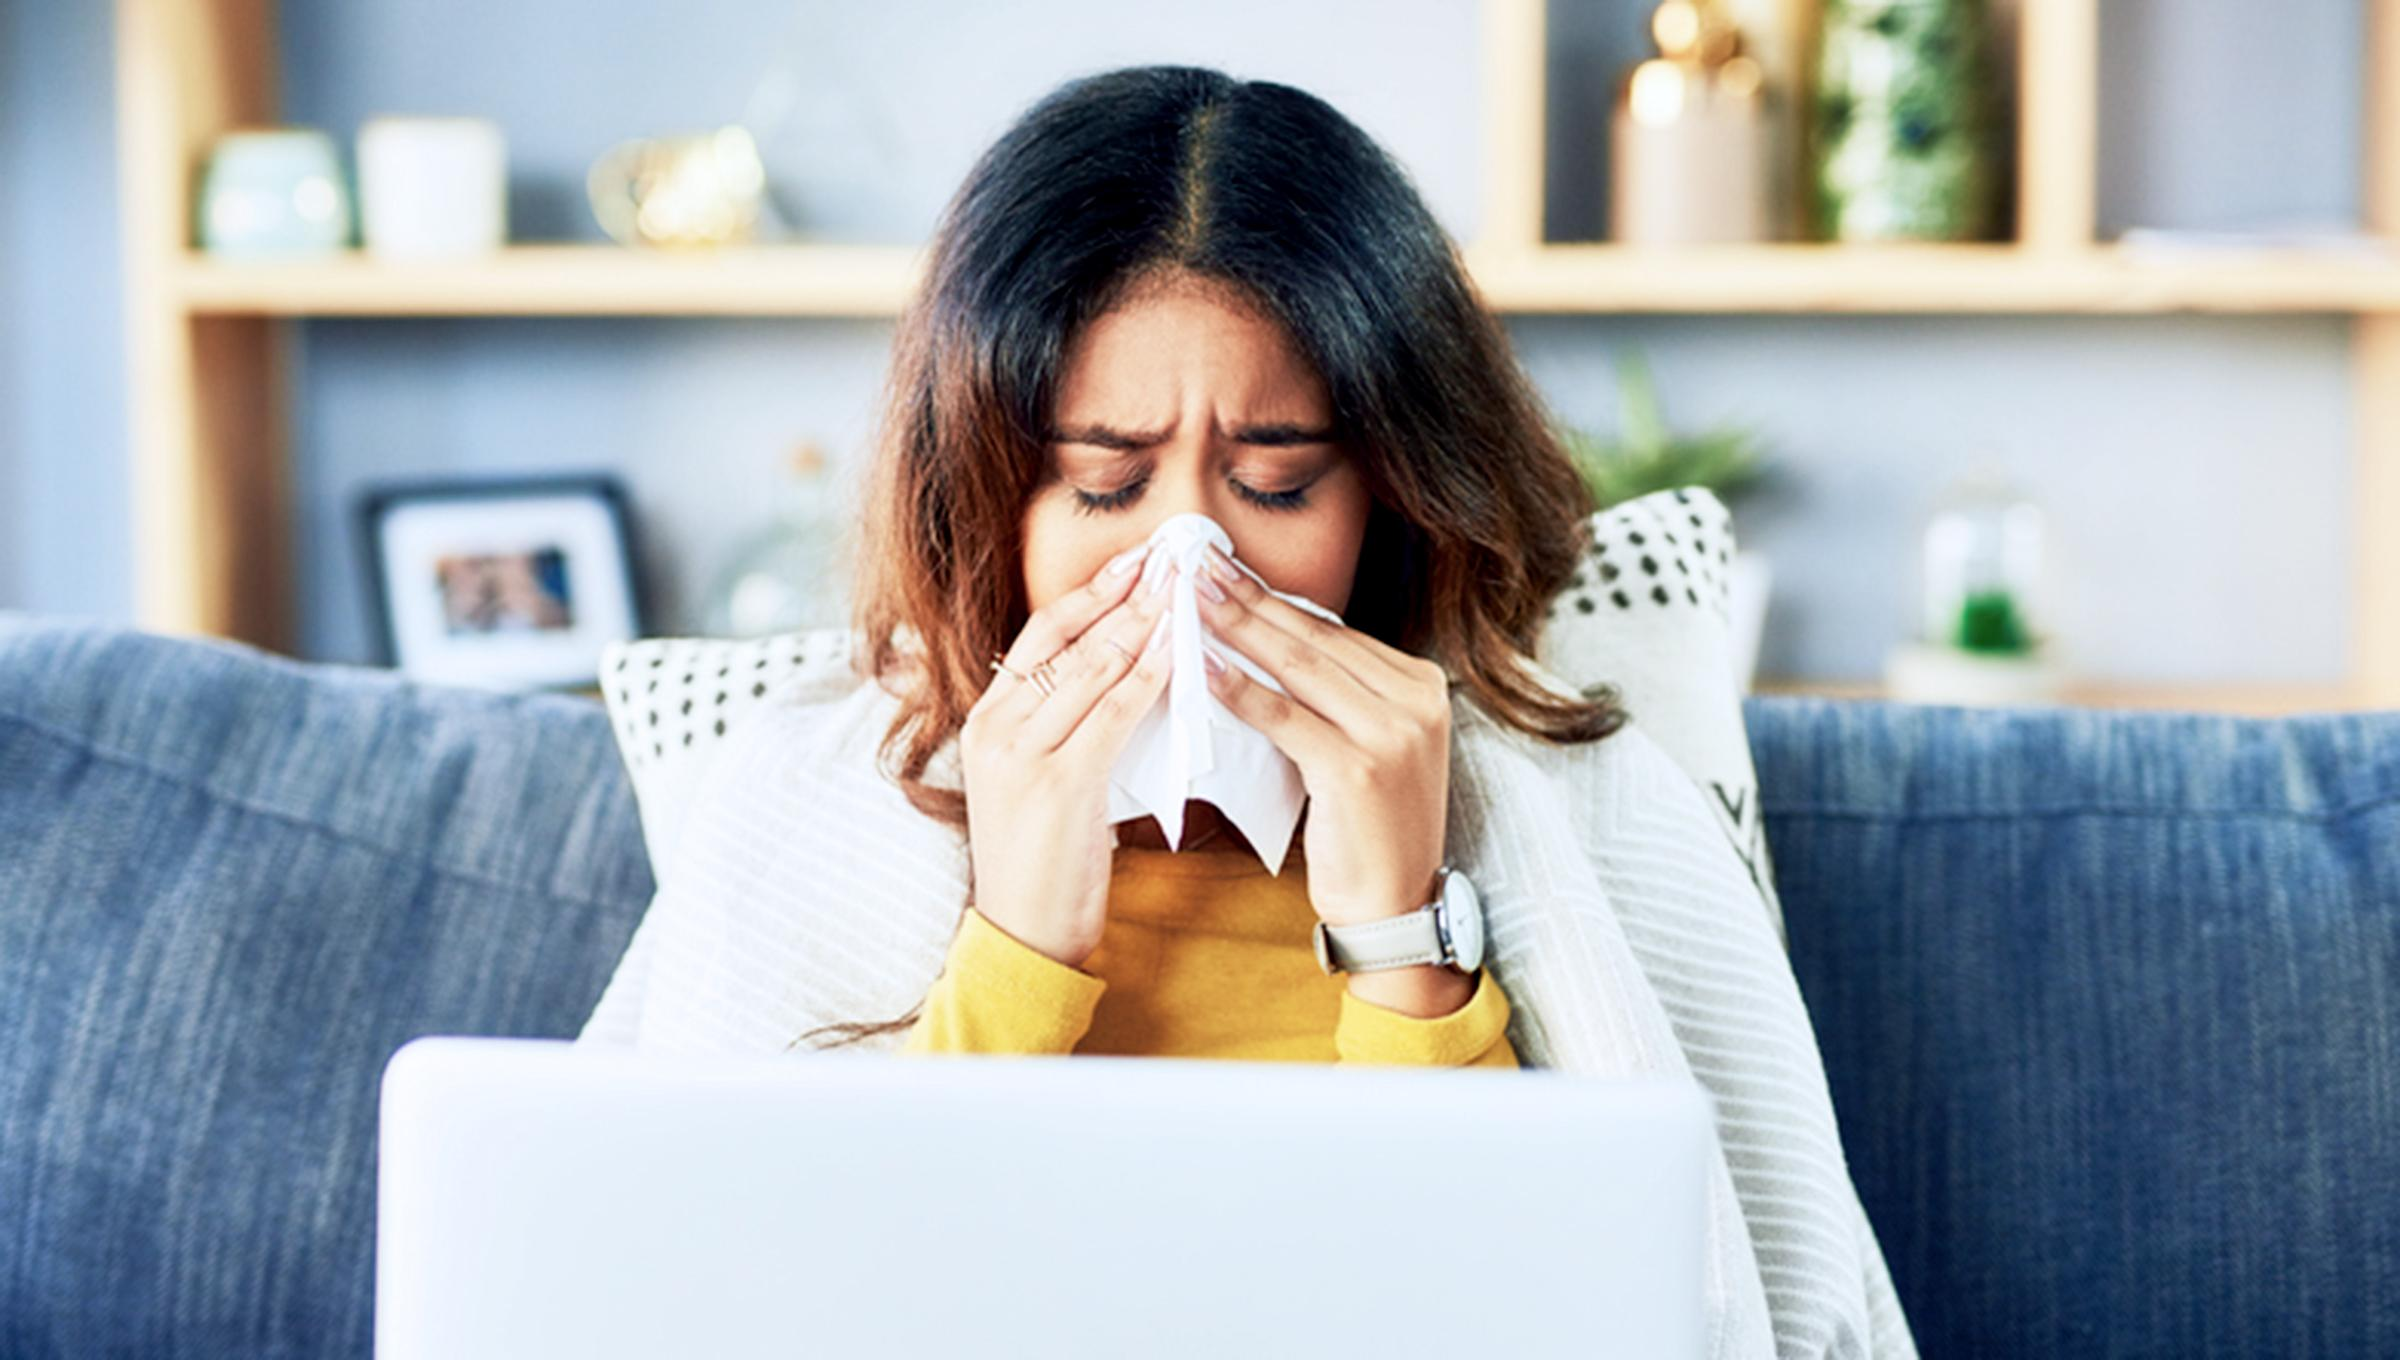 A woman sitting on her couch wrapped in a blanket blows her nose.